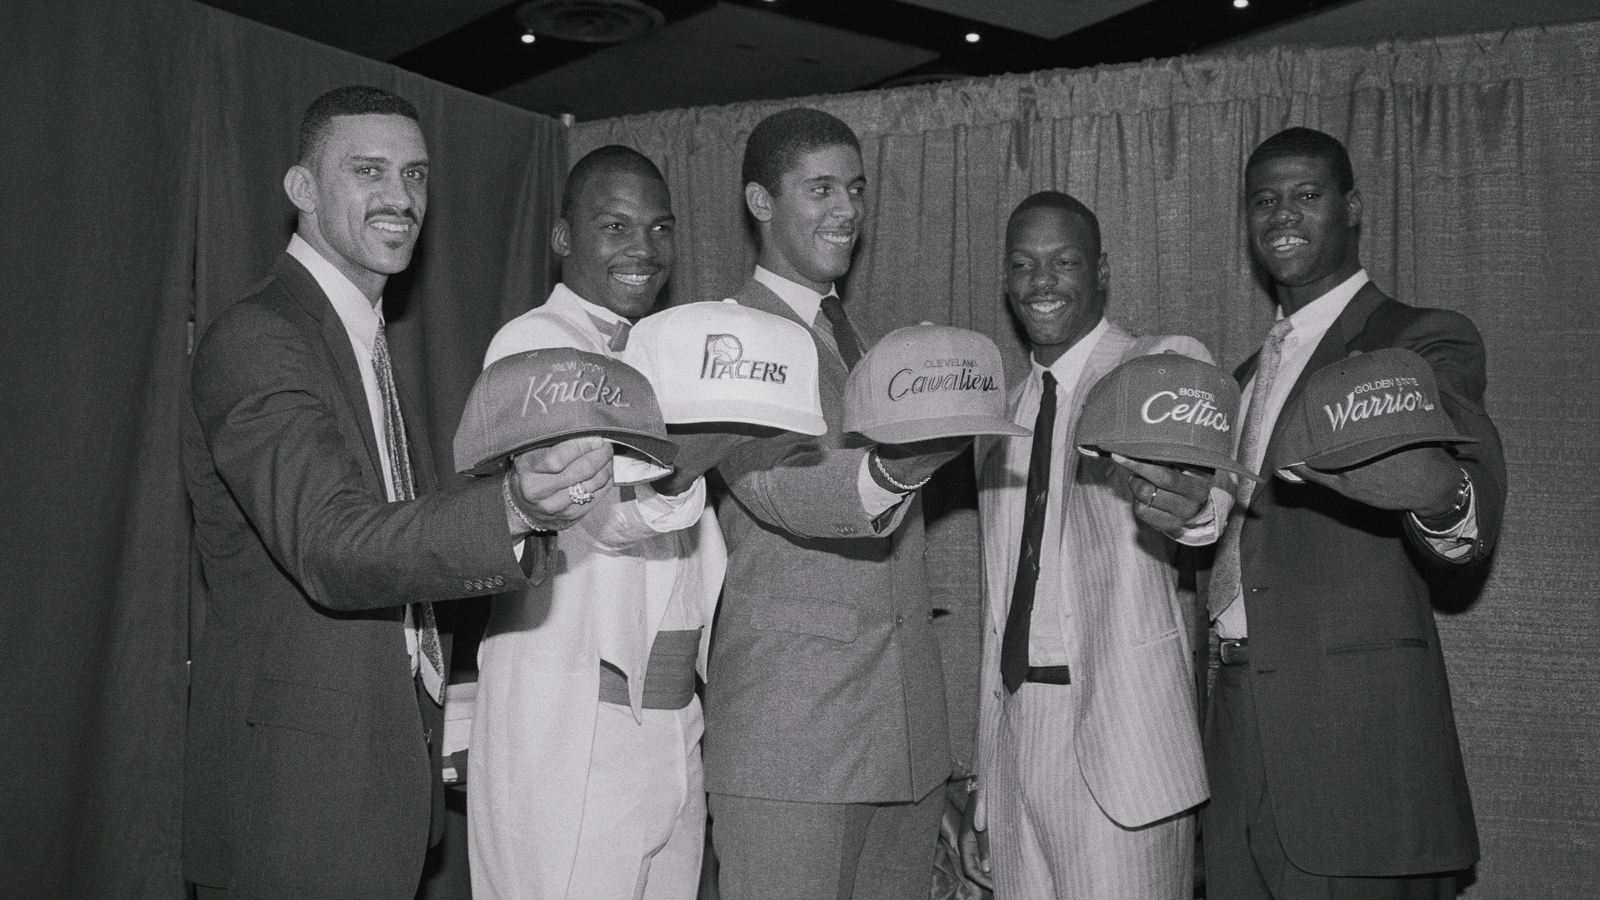 Looking-back-1986-nba-draft-35-years-later